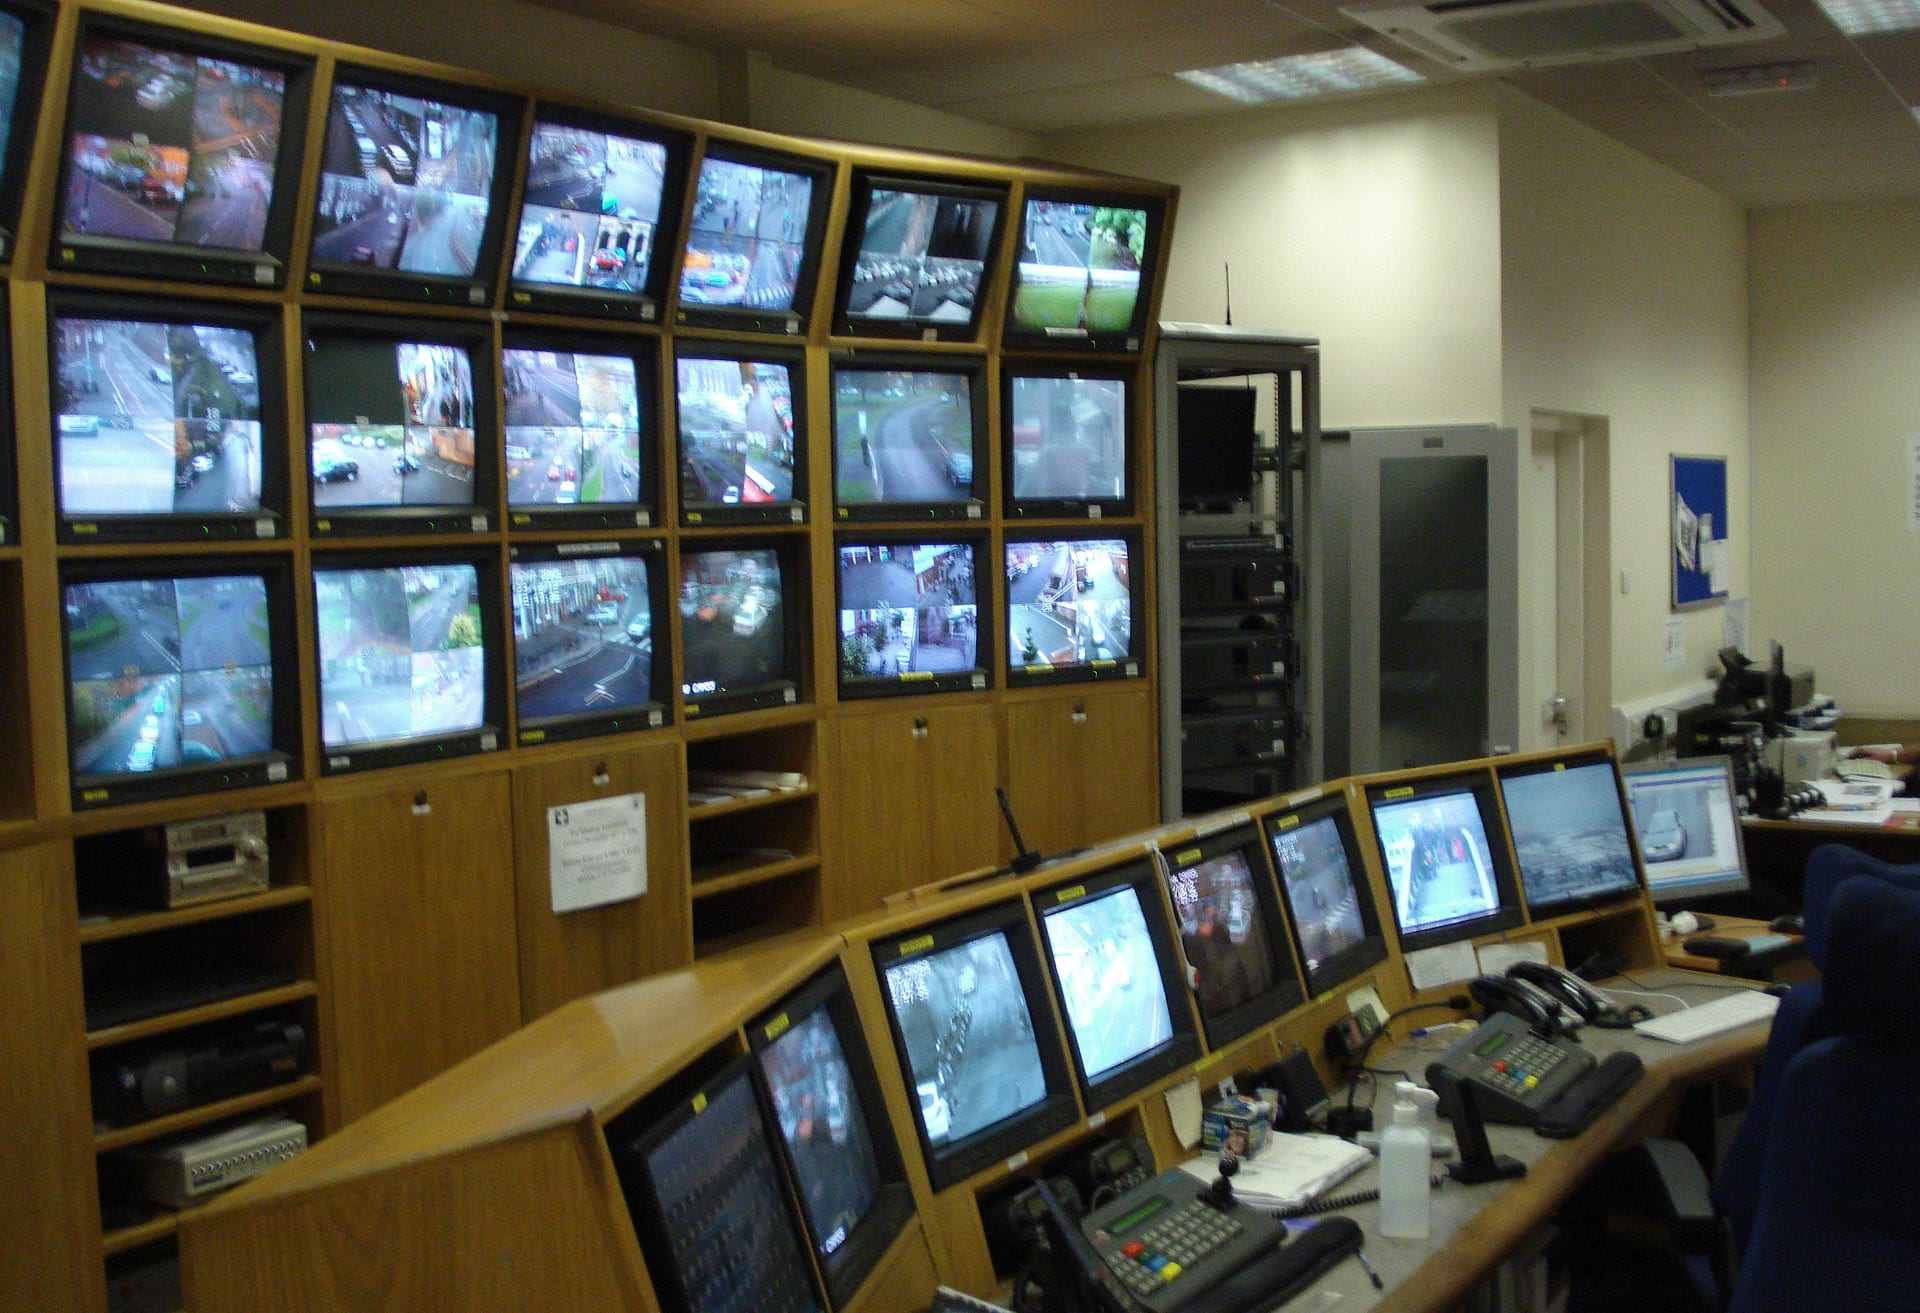 CCTV control room case study | Thinking Space Systems